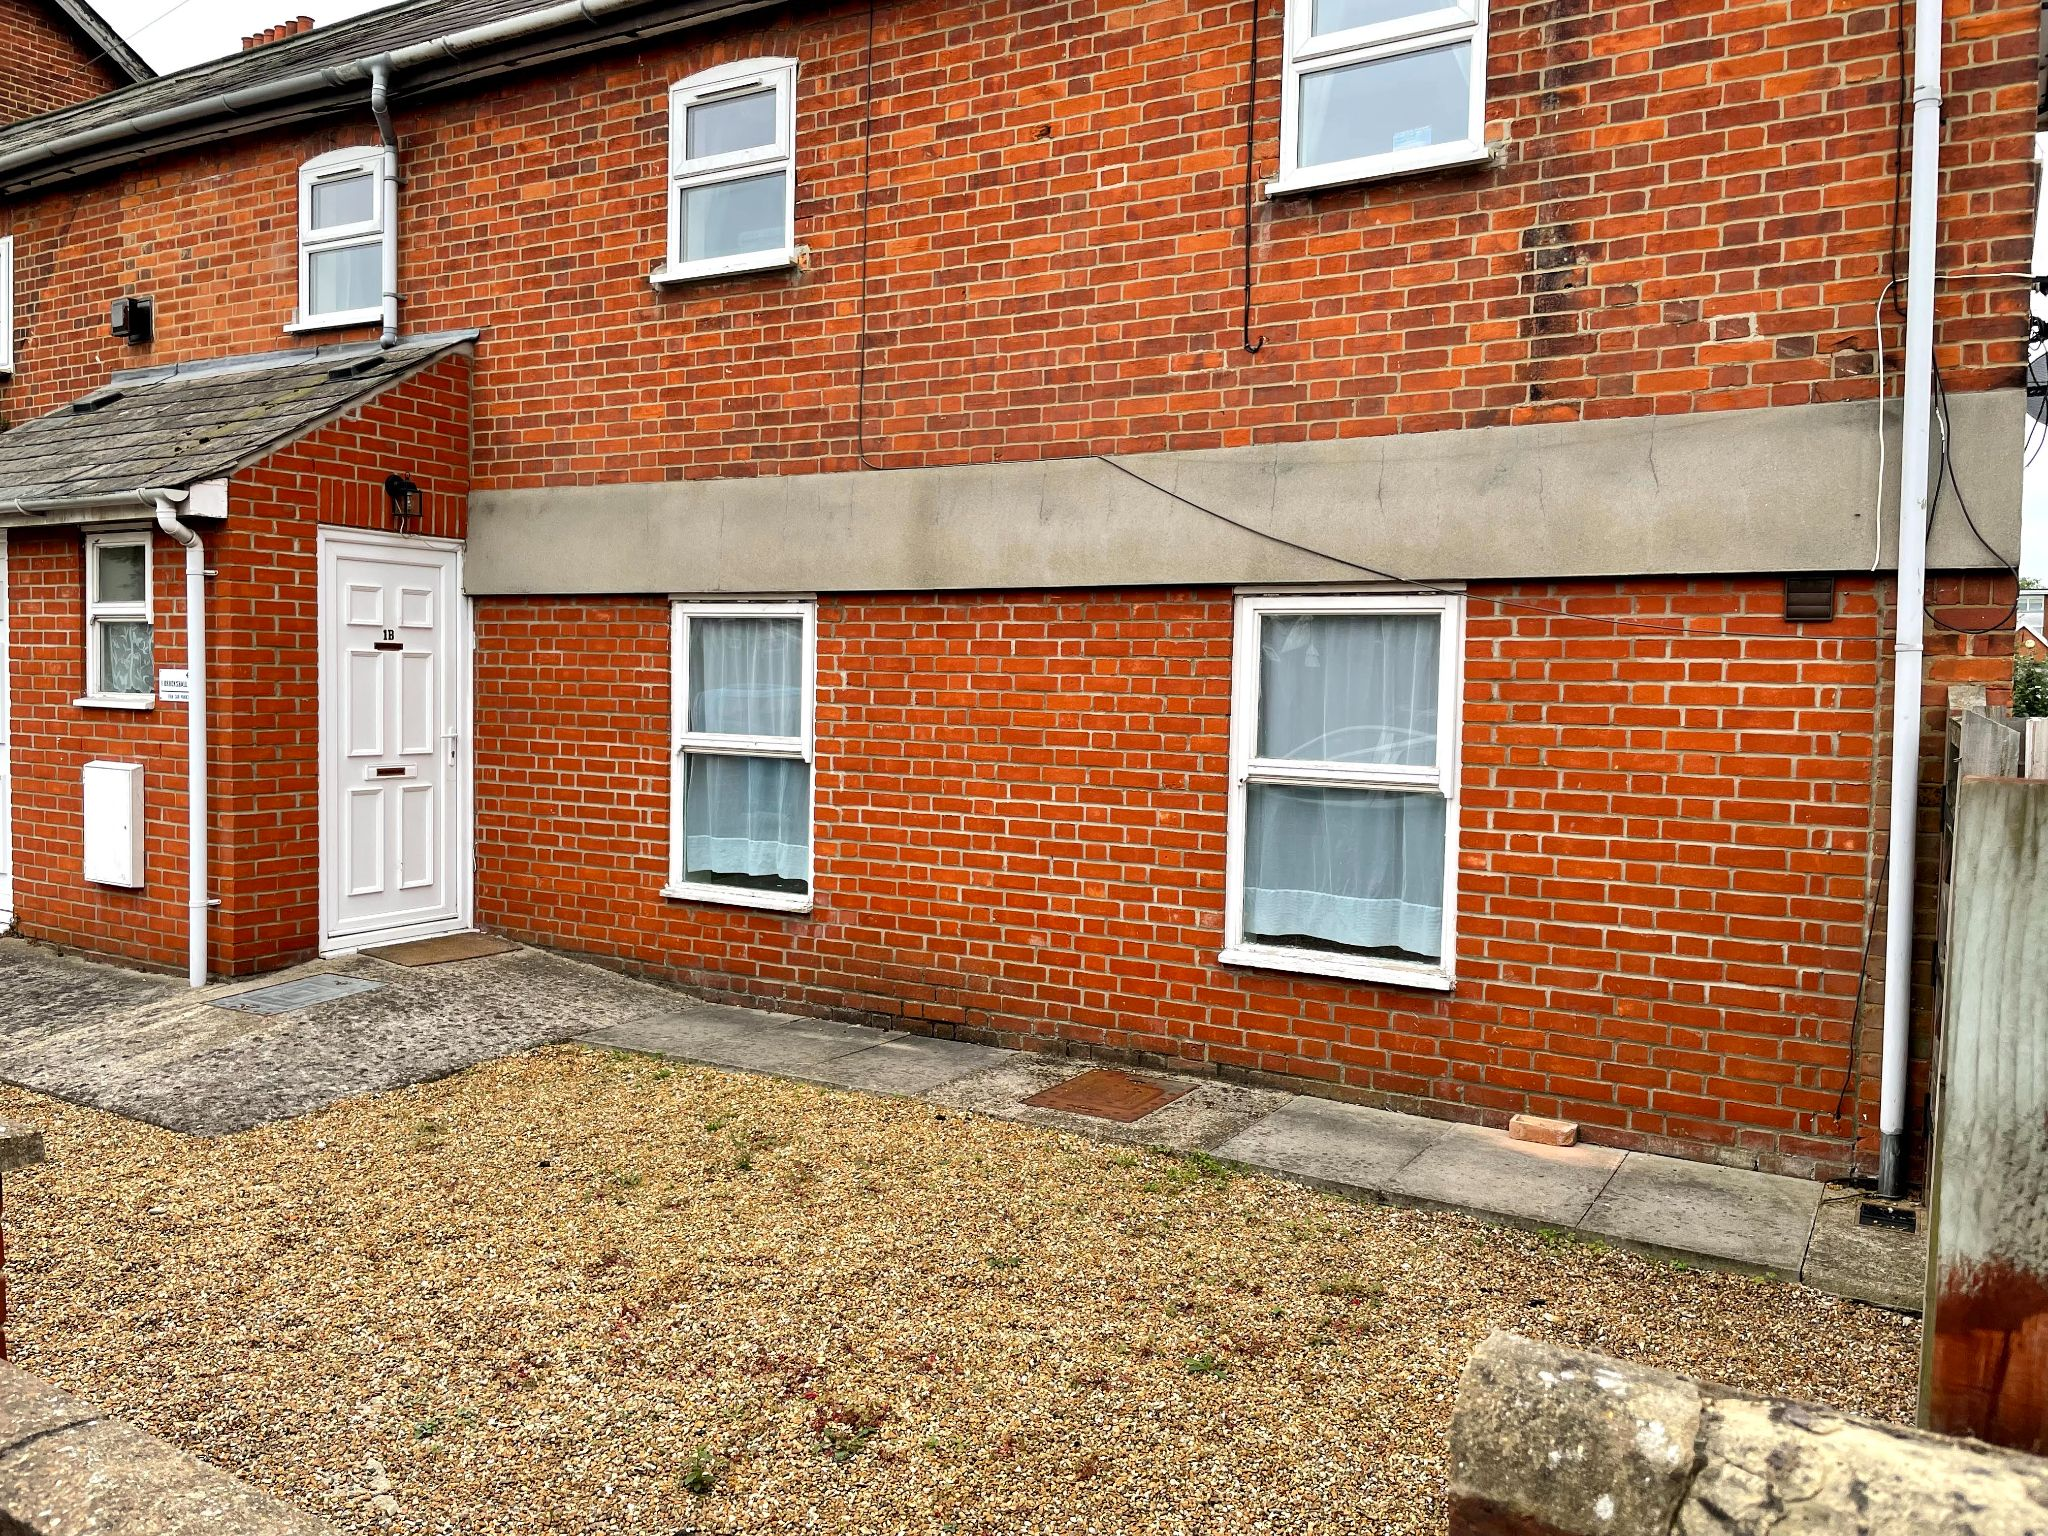 Flat Flat/apartment To Let in Ipswich - Photograph 1